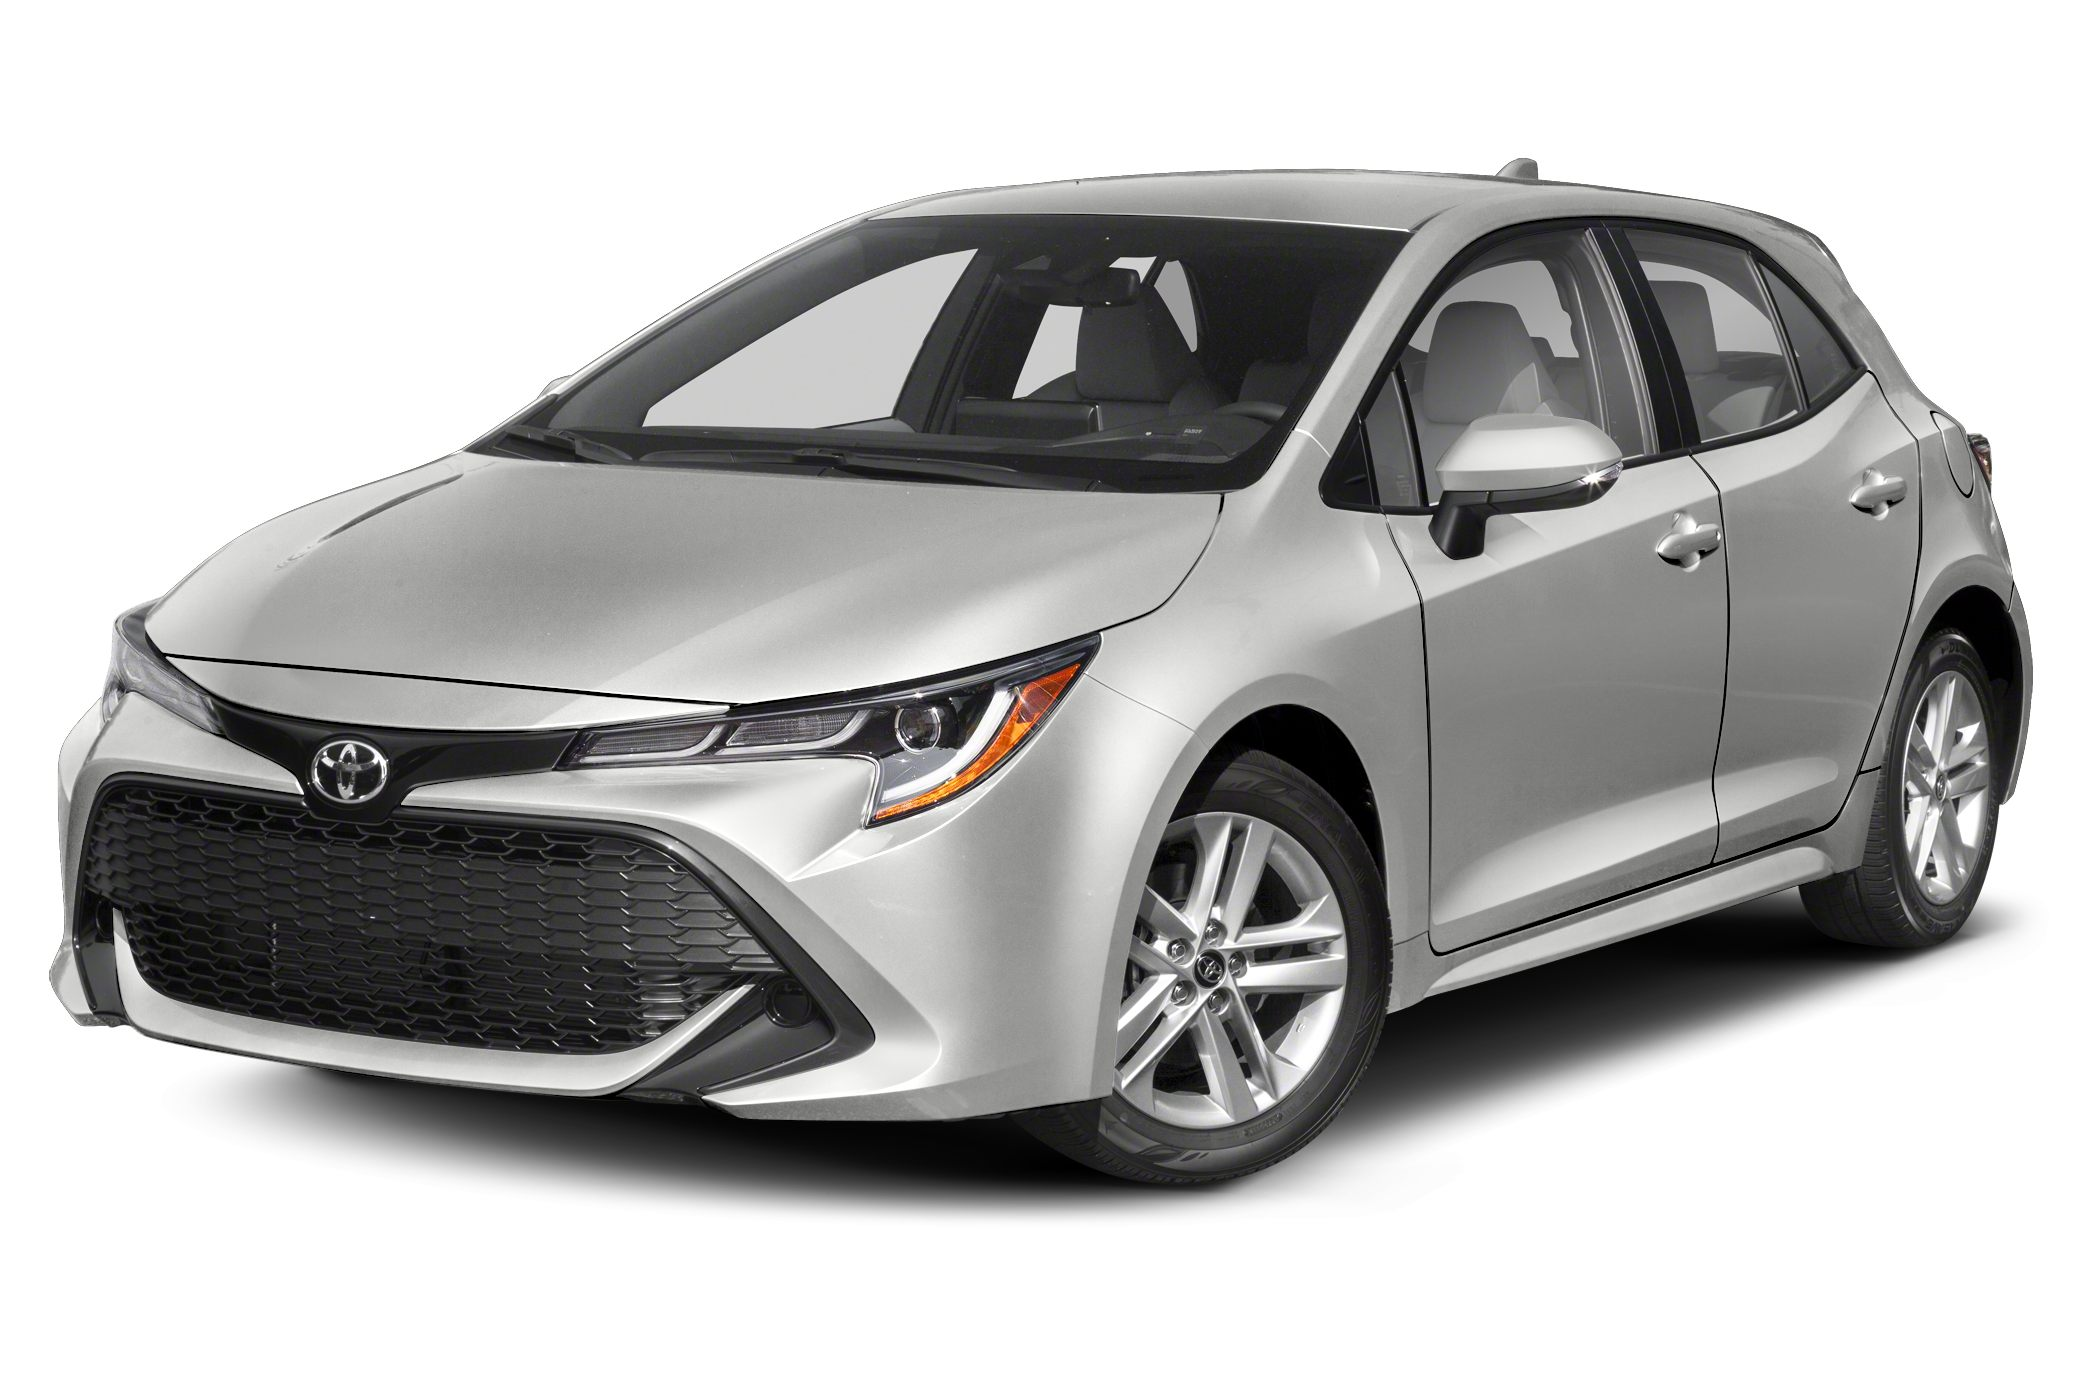 Toyota Corolla Size >> 2019 Toyota Corolla Hatchback Xse 5dr Specs And Prices